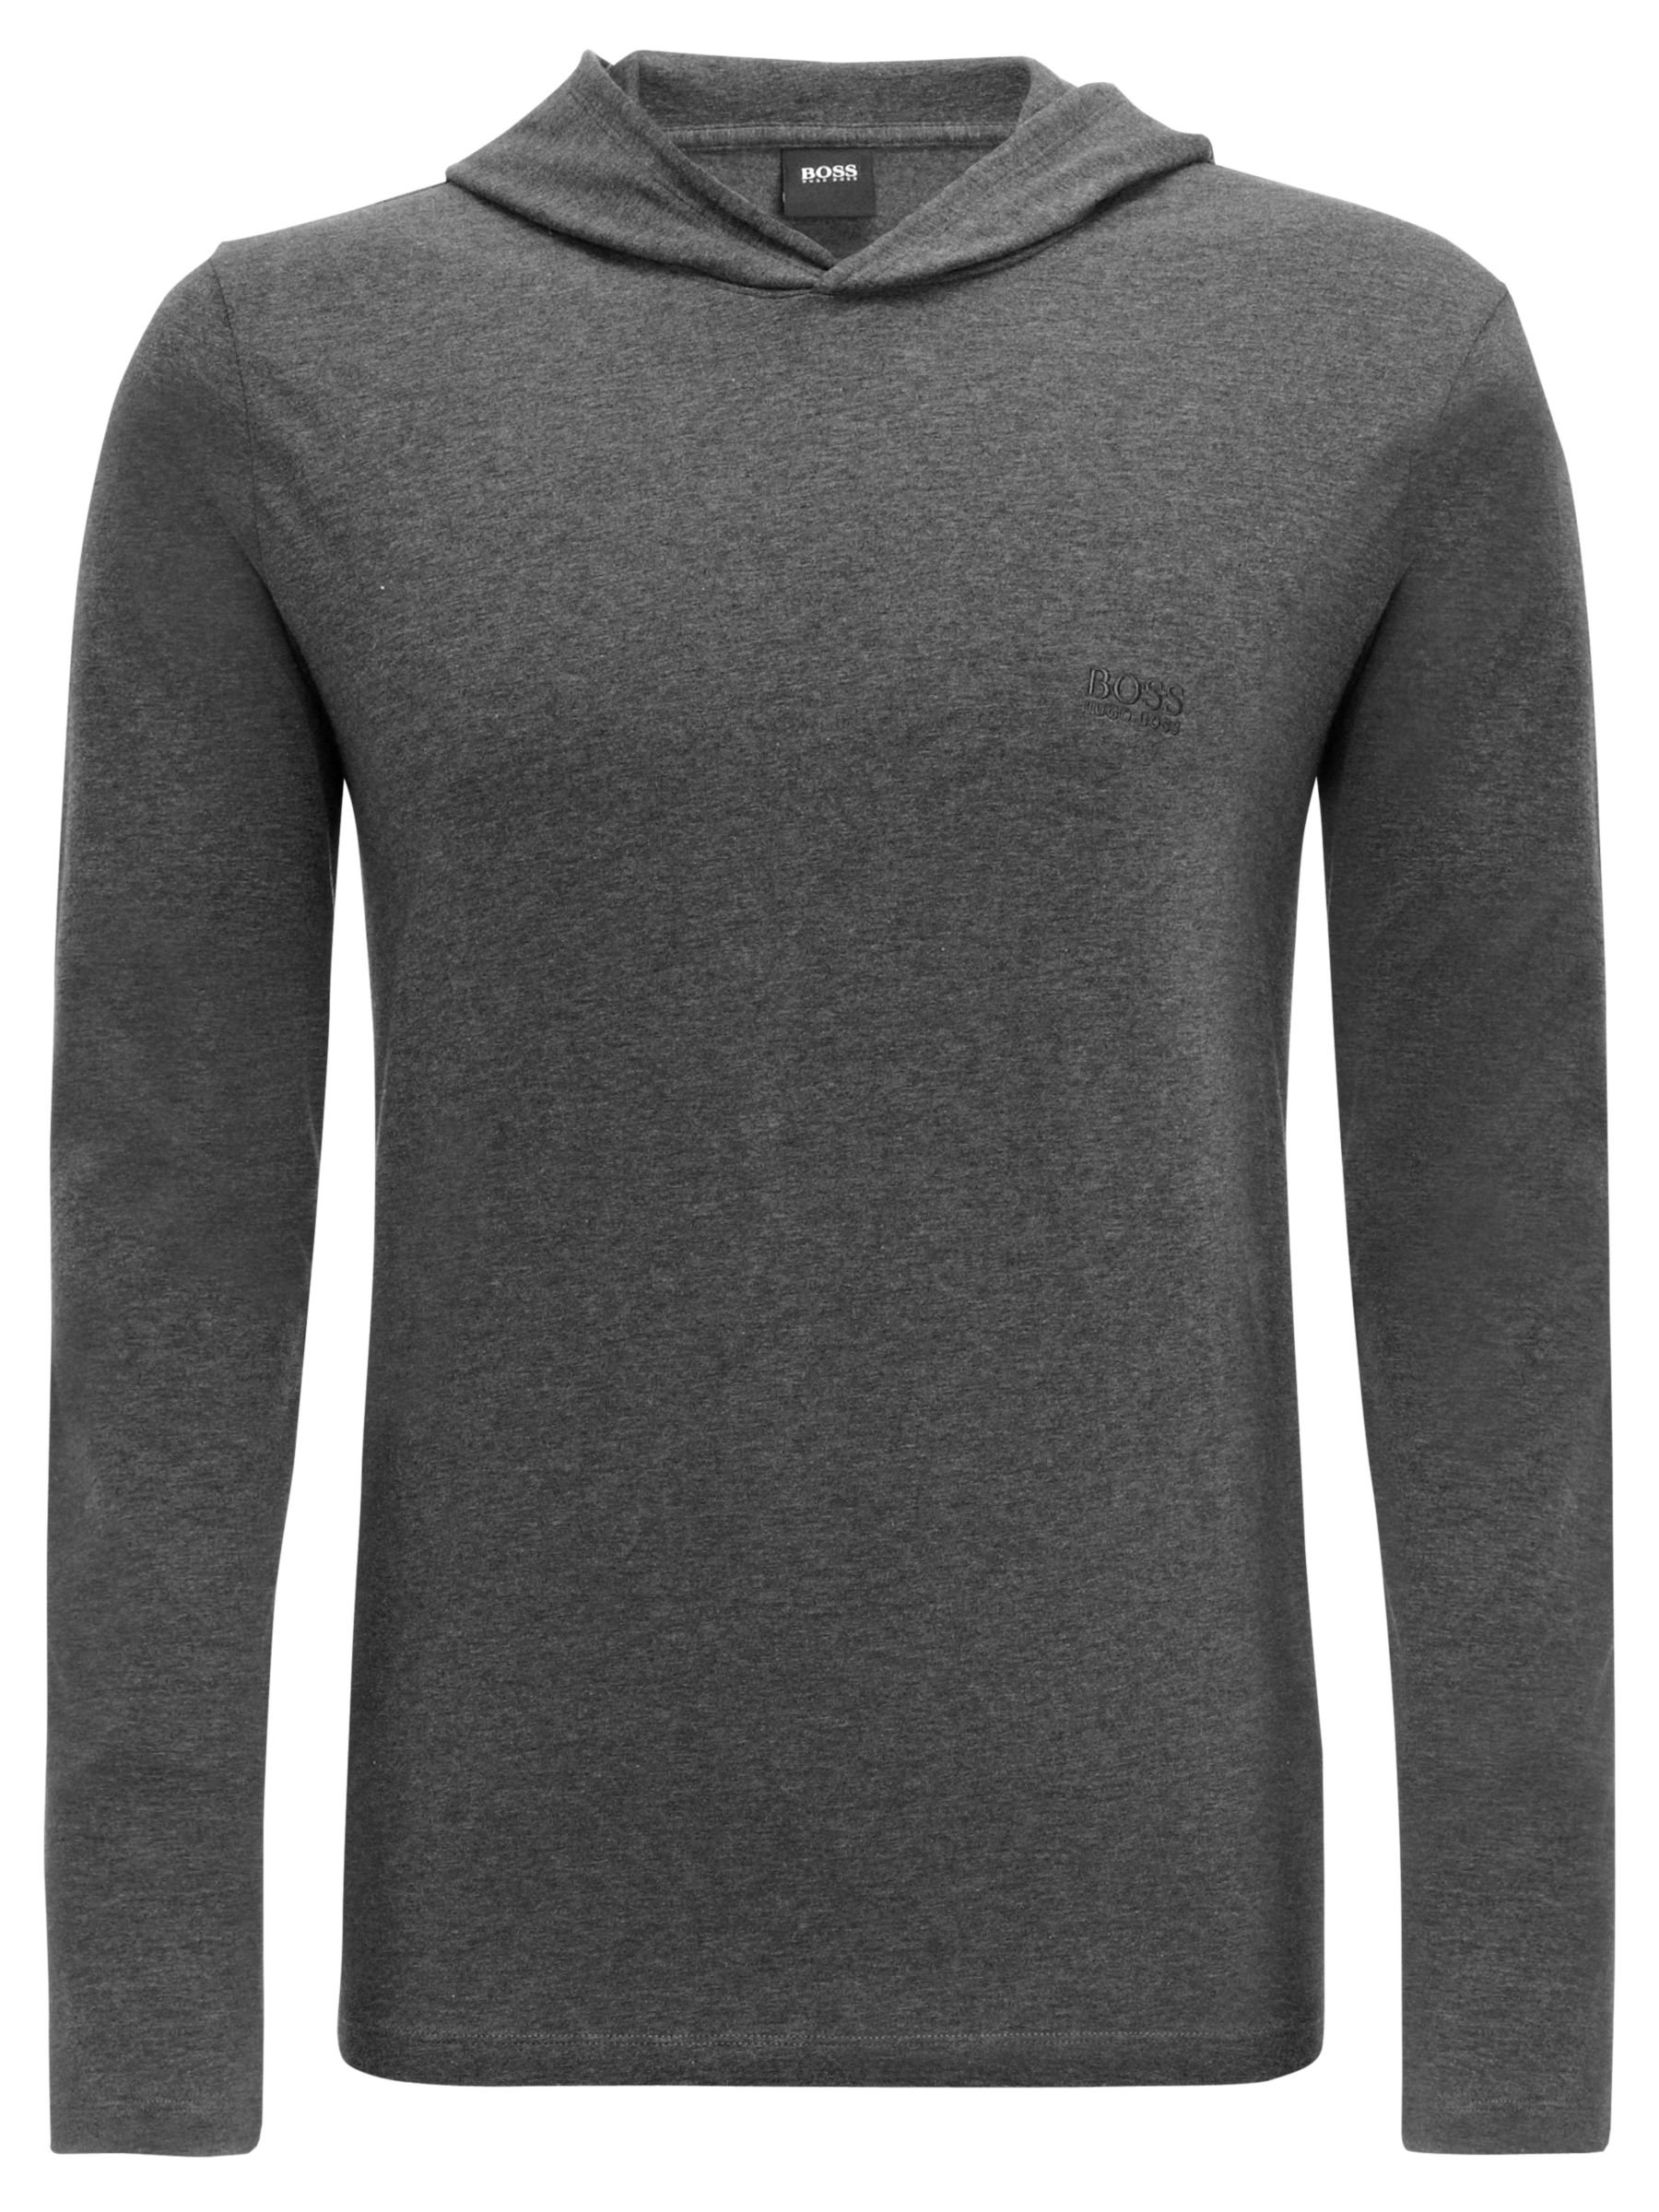 Hugo Boss Inno Long Sleeve Hoody, Charcoal